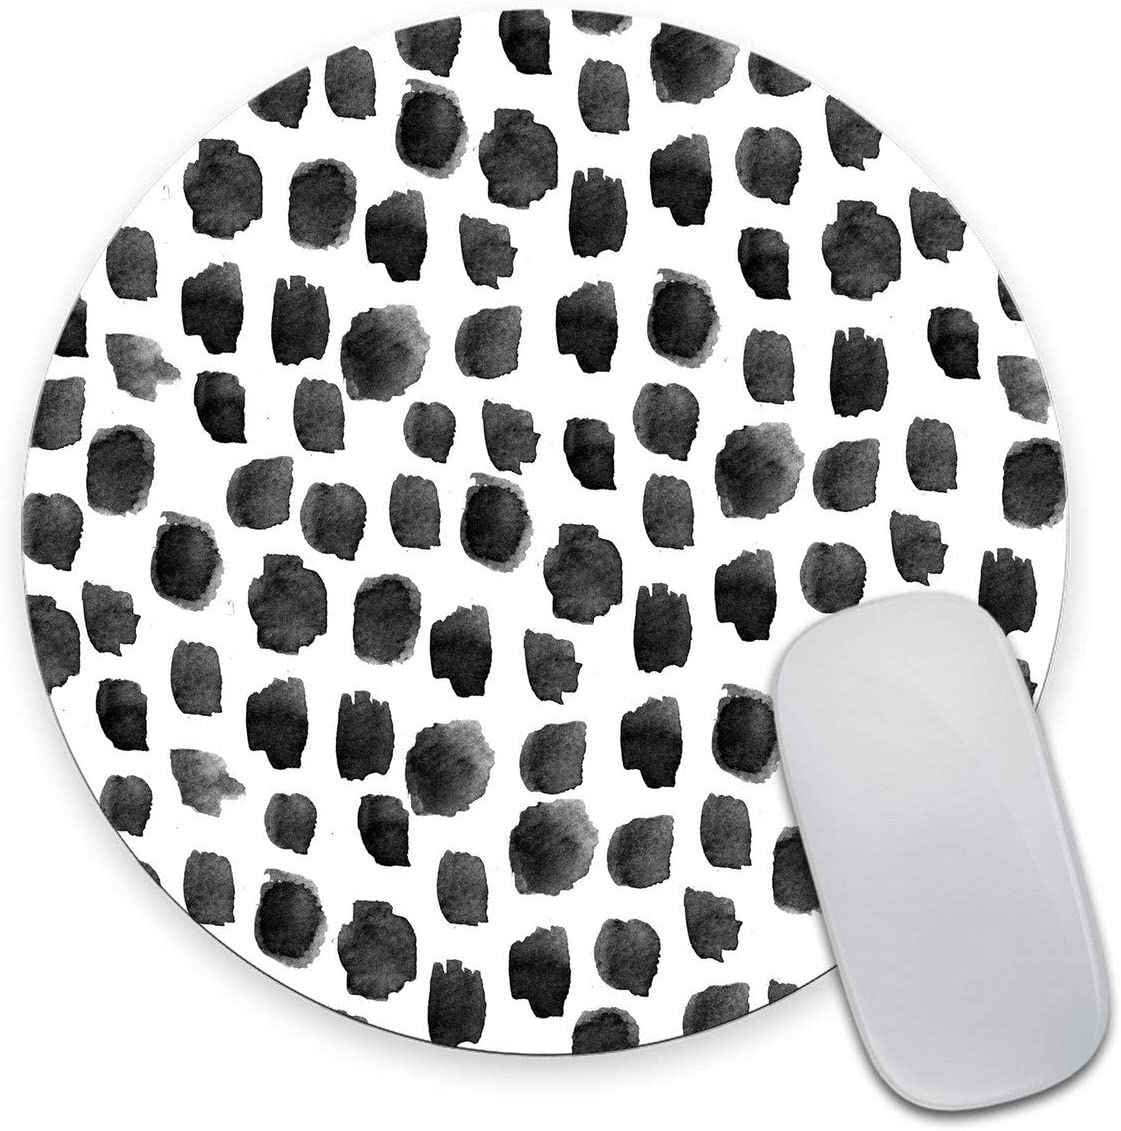 Smooffly Polka Dot Mouse Pad, Polka Dot Print, Dot Pattern, Gift for Her, Cute Round Mousepad, Cute Desk Accessories, Office Decor, Desk Decor, Mouse Pads